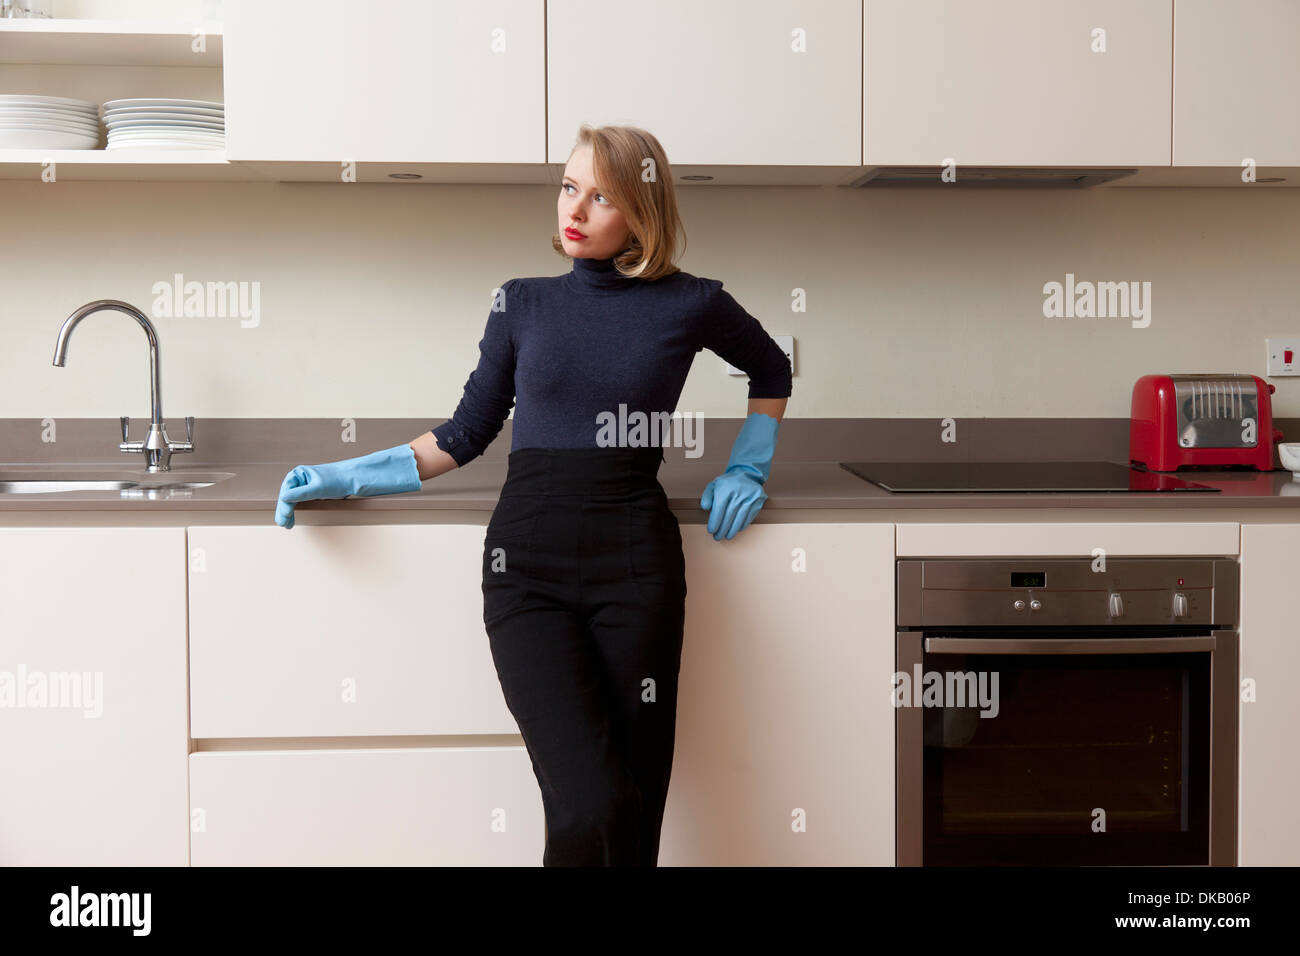 Woman leaning against kitchen cabinet - Stock Image